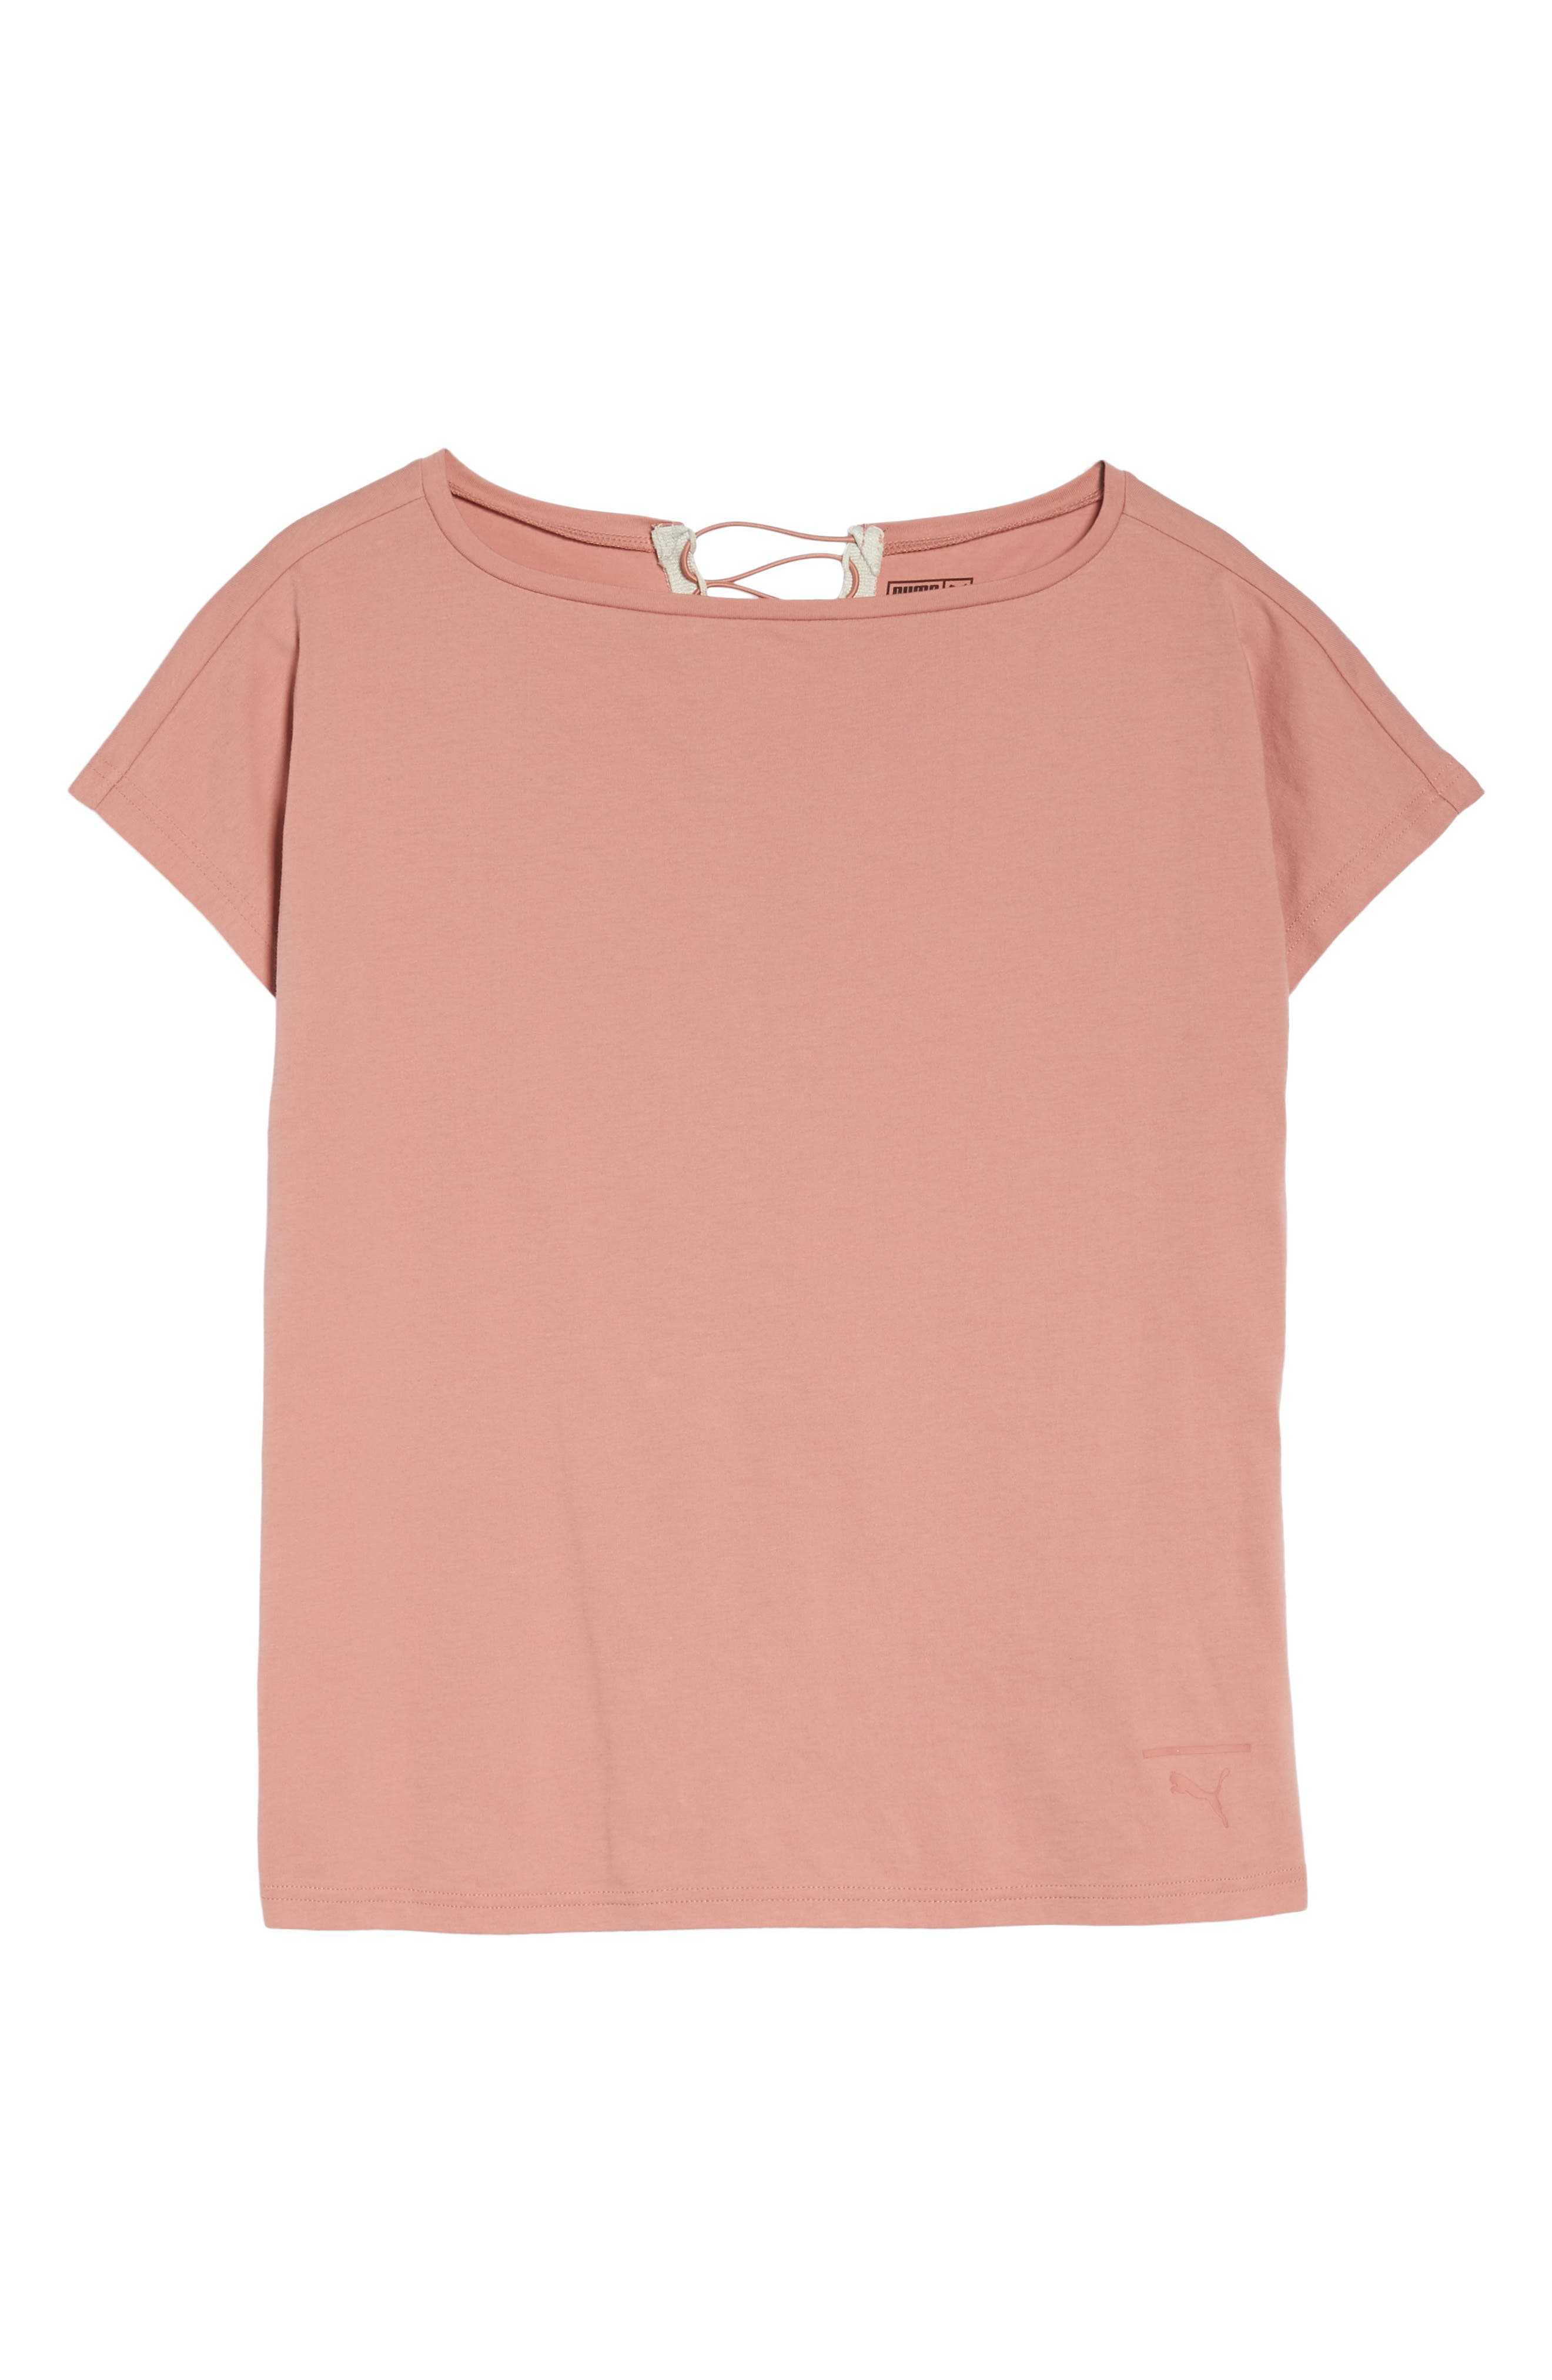 Lux Crisscross Tee,                             Alternate thumbnail 7, color,                             Cameo Brown